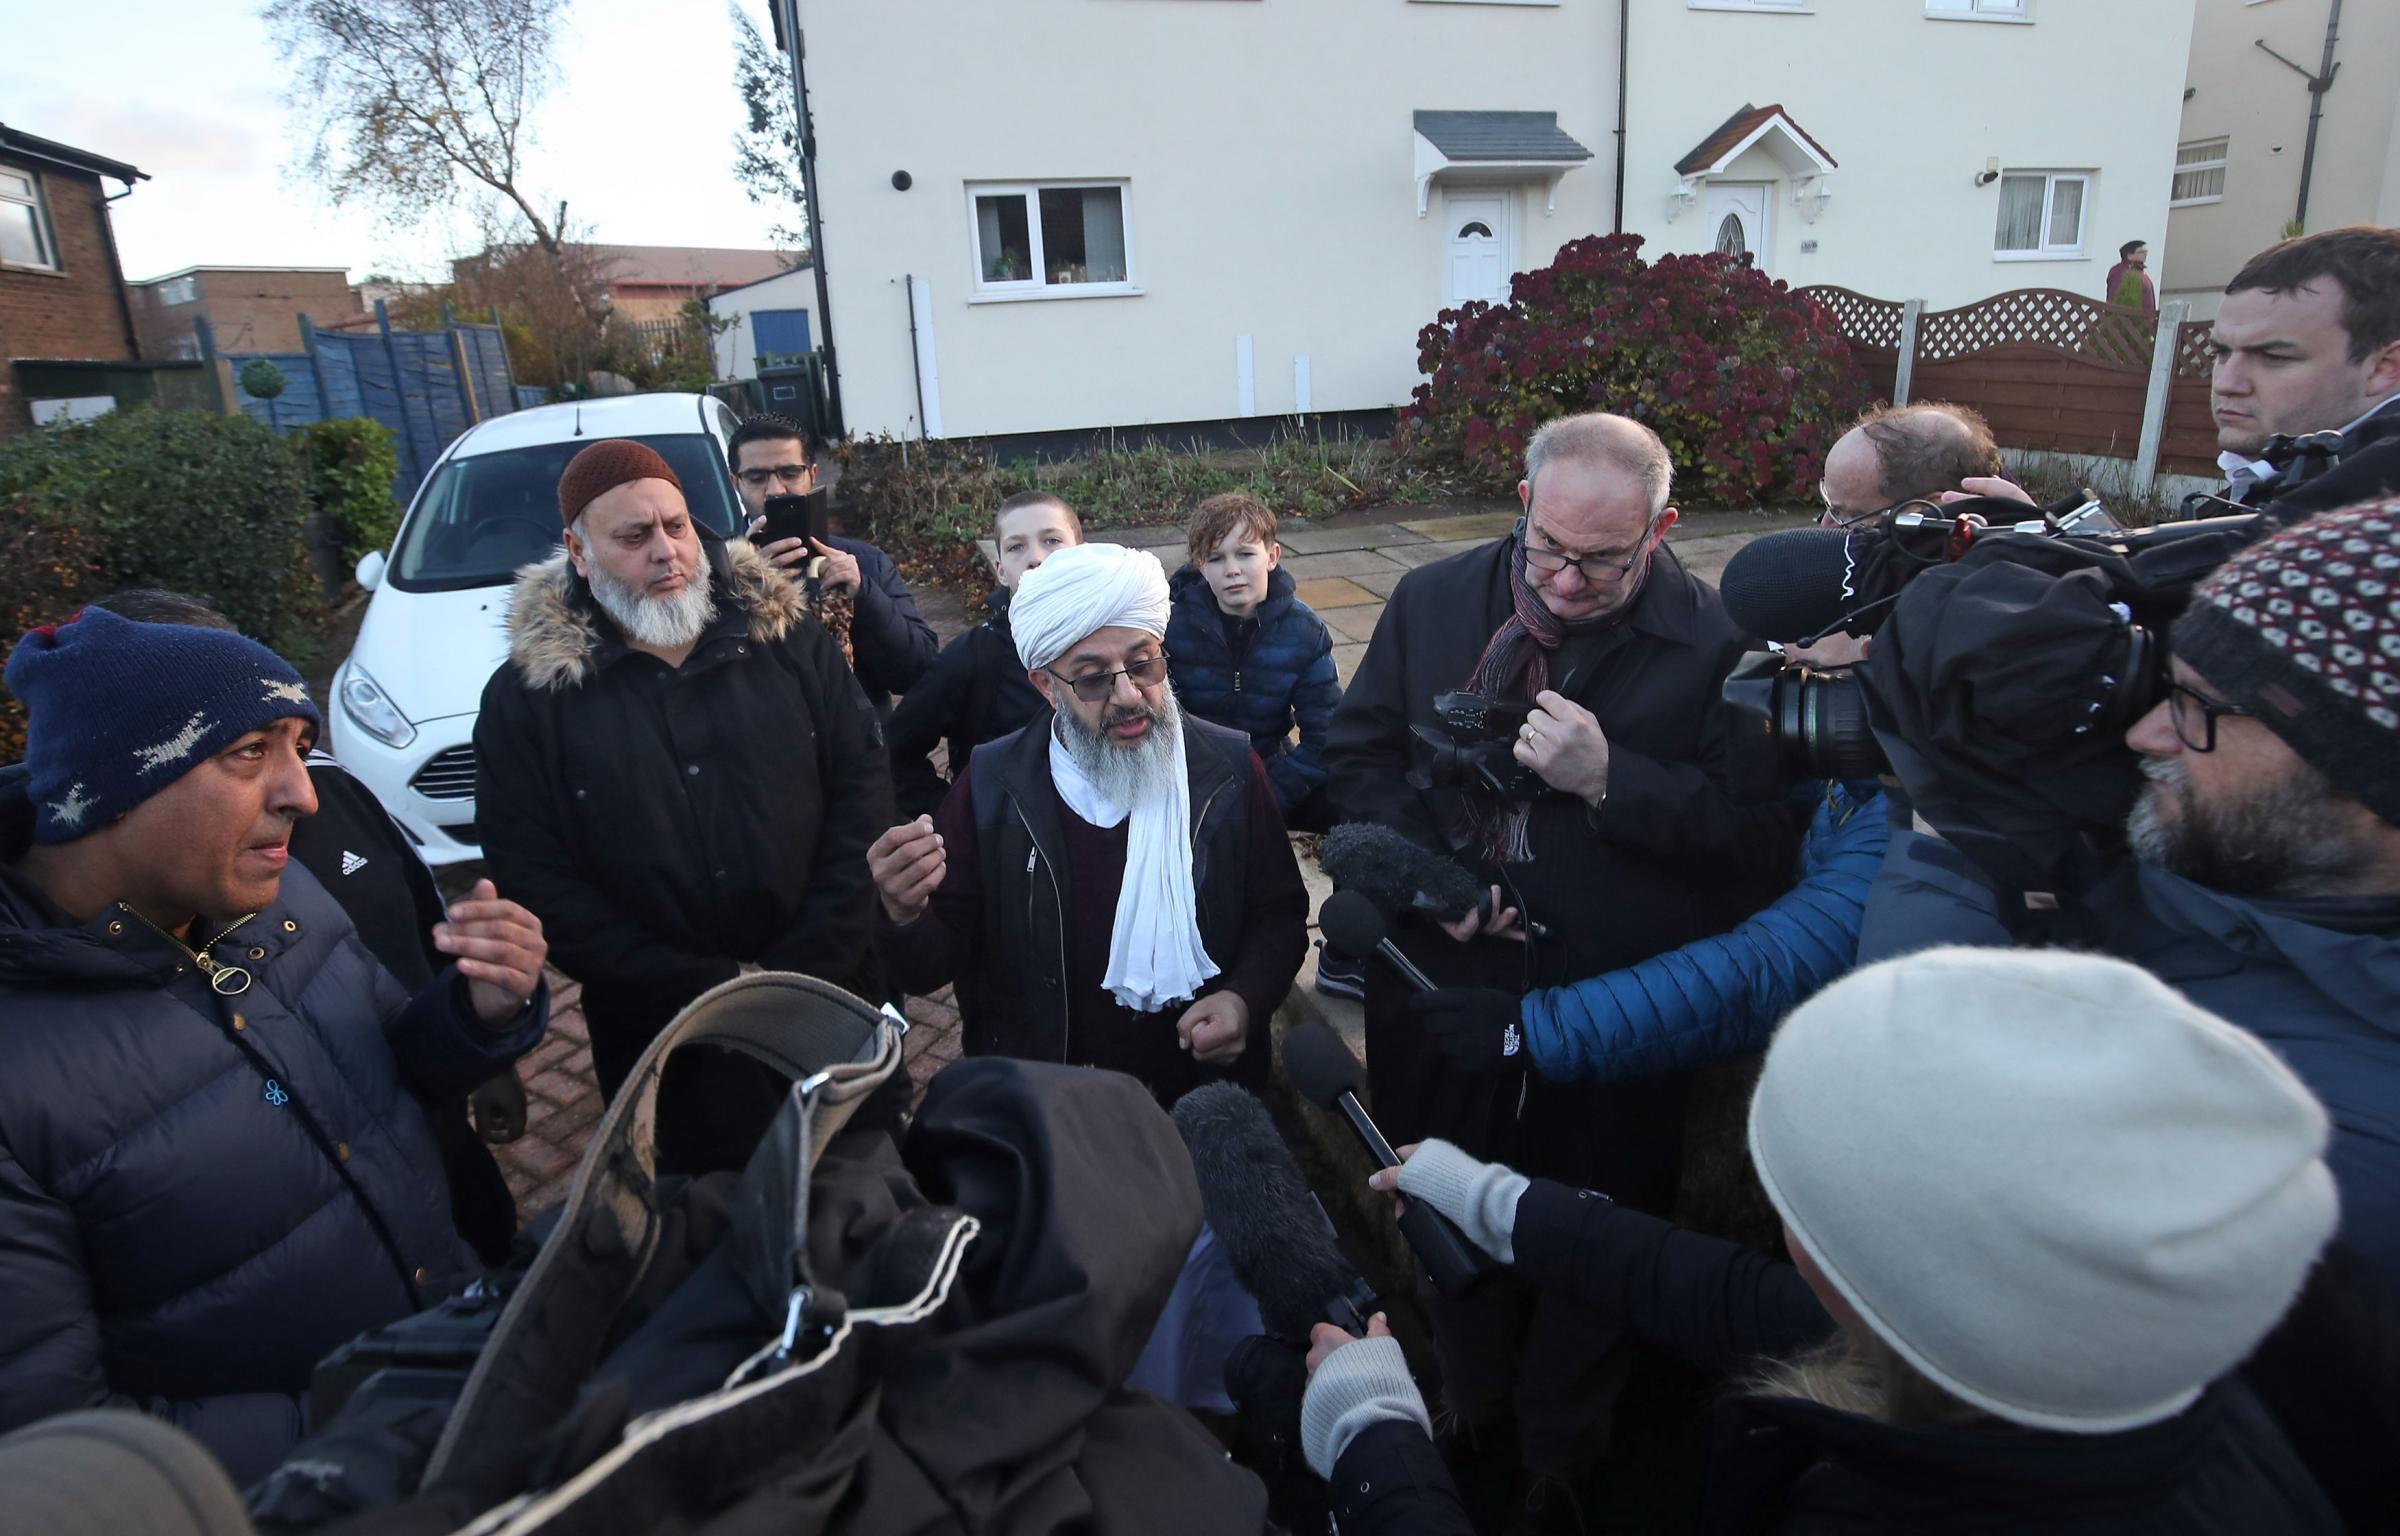 Imam Mohammed Amin Pandor speaking to the media at a peaceful protest outside Almondbury Community School, in Huddersfield after footage was shared on social media of a 15-year-old Syrian refugee being attacked at the school.